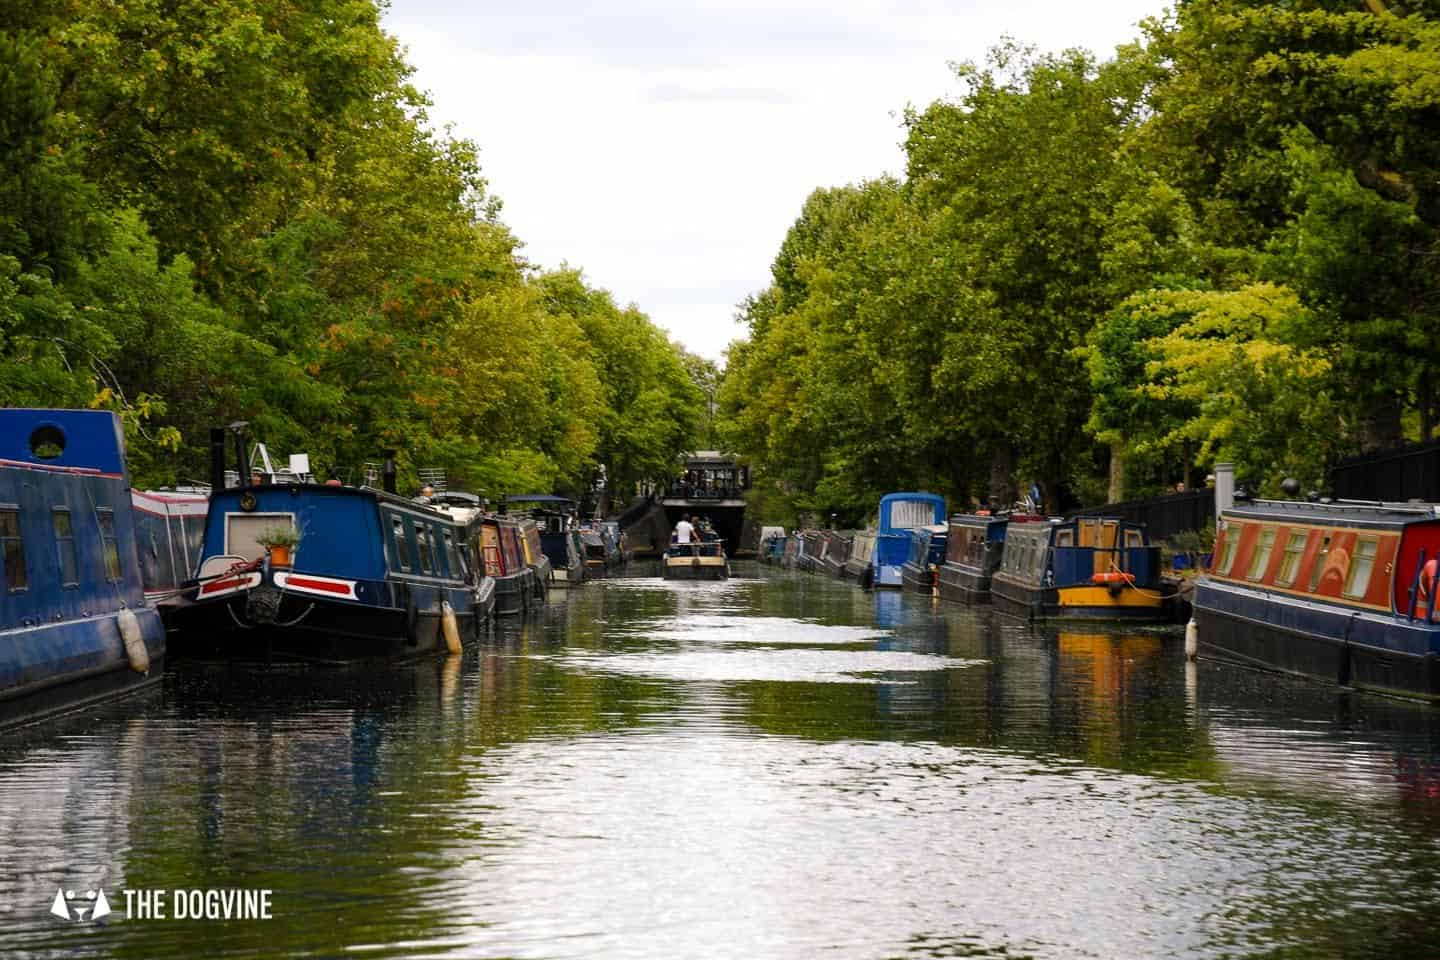 Dog-friendly London The Best Free Dog-friendly Things To Do - Regent's Canal